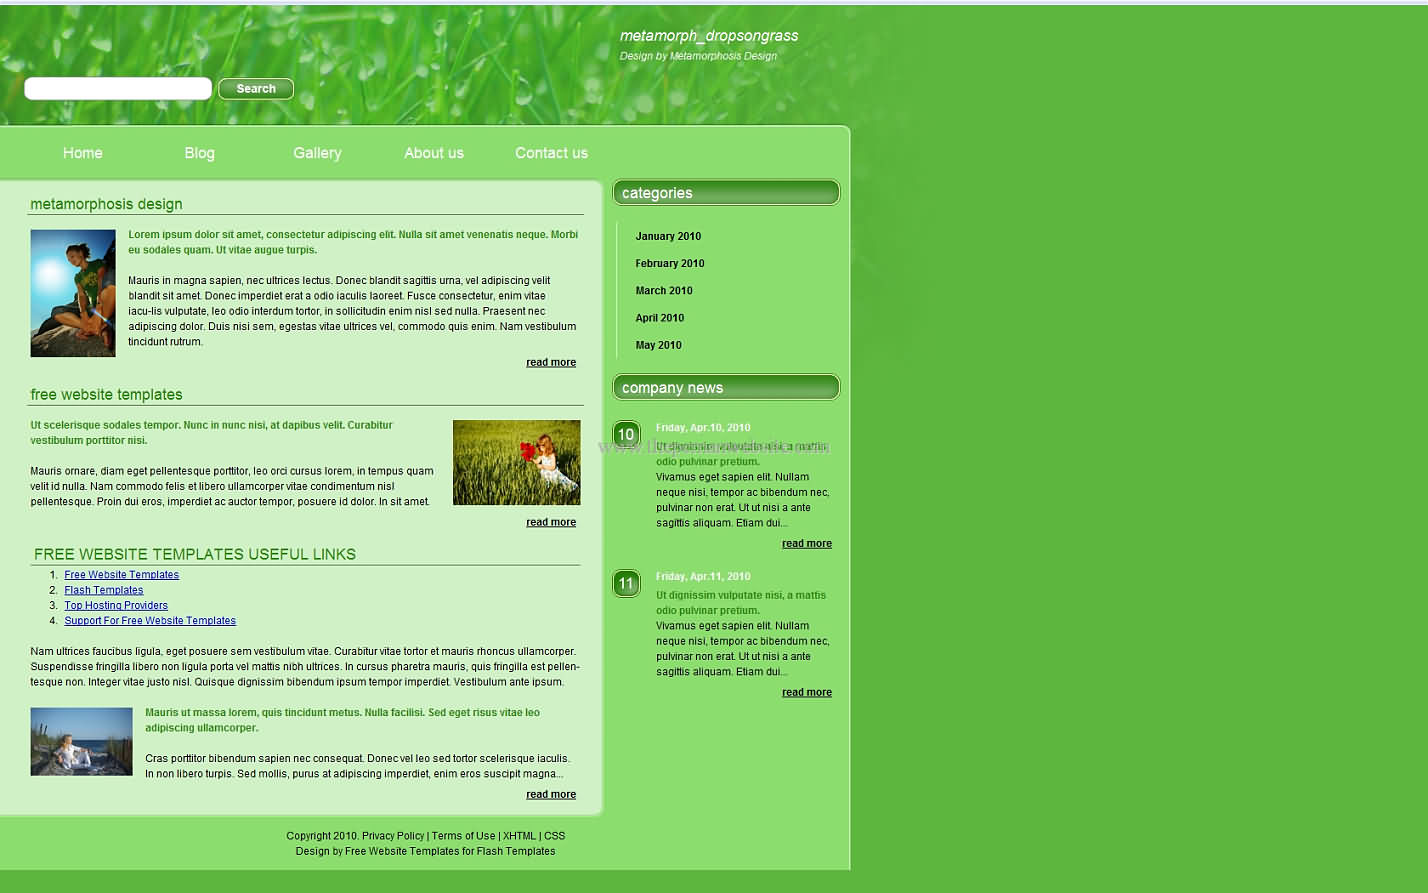 Metamorph Dropsongrass css template